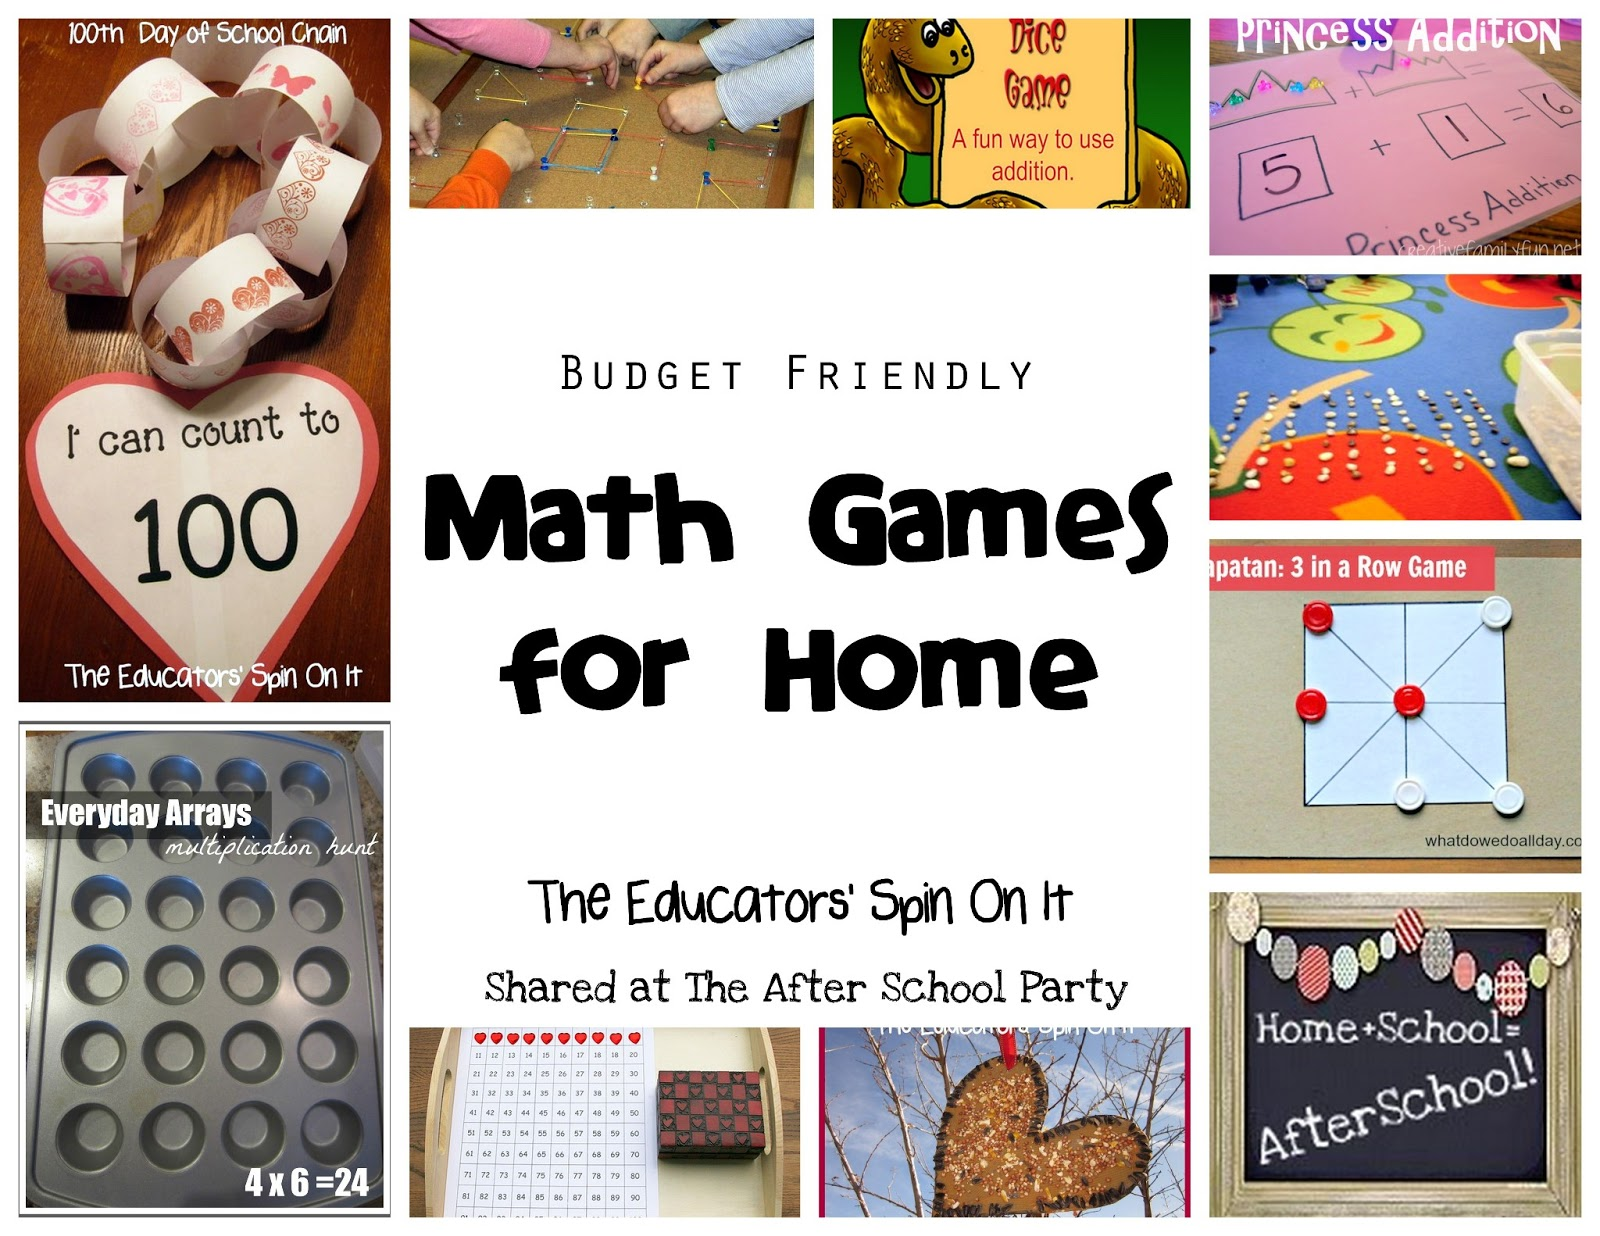 Budget Friendly Math Games for Home - The Educators' Spin On It